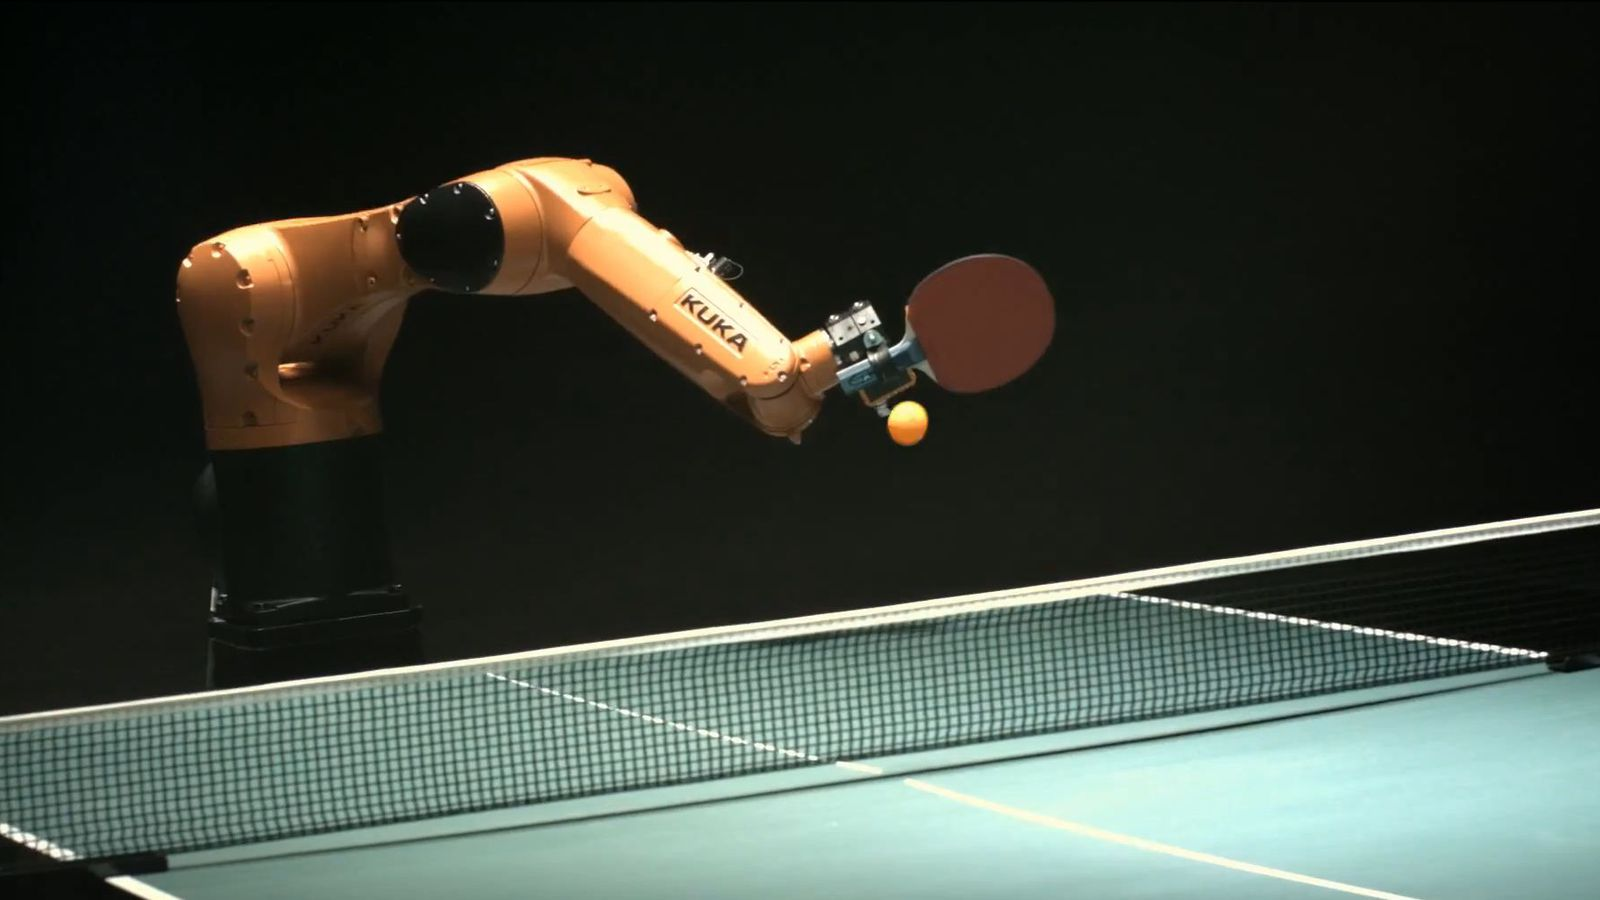 Everybody loses in ping pong match between robot and man the verge - Forum tennis tavolo toscano ...